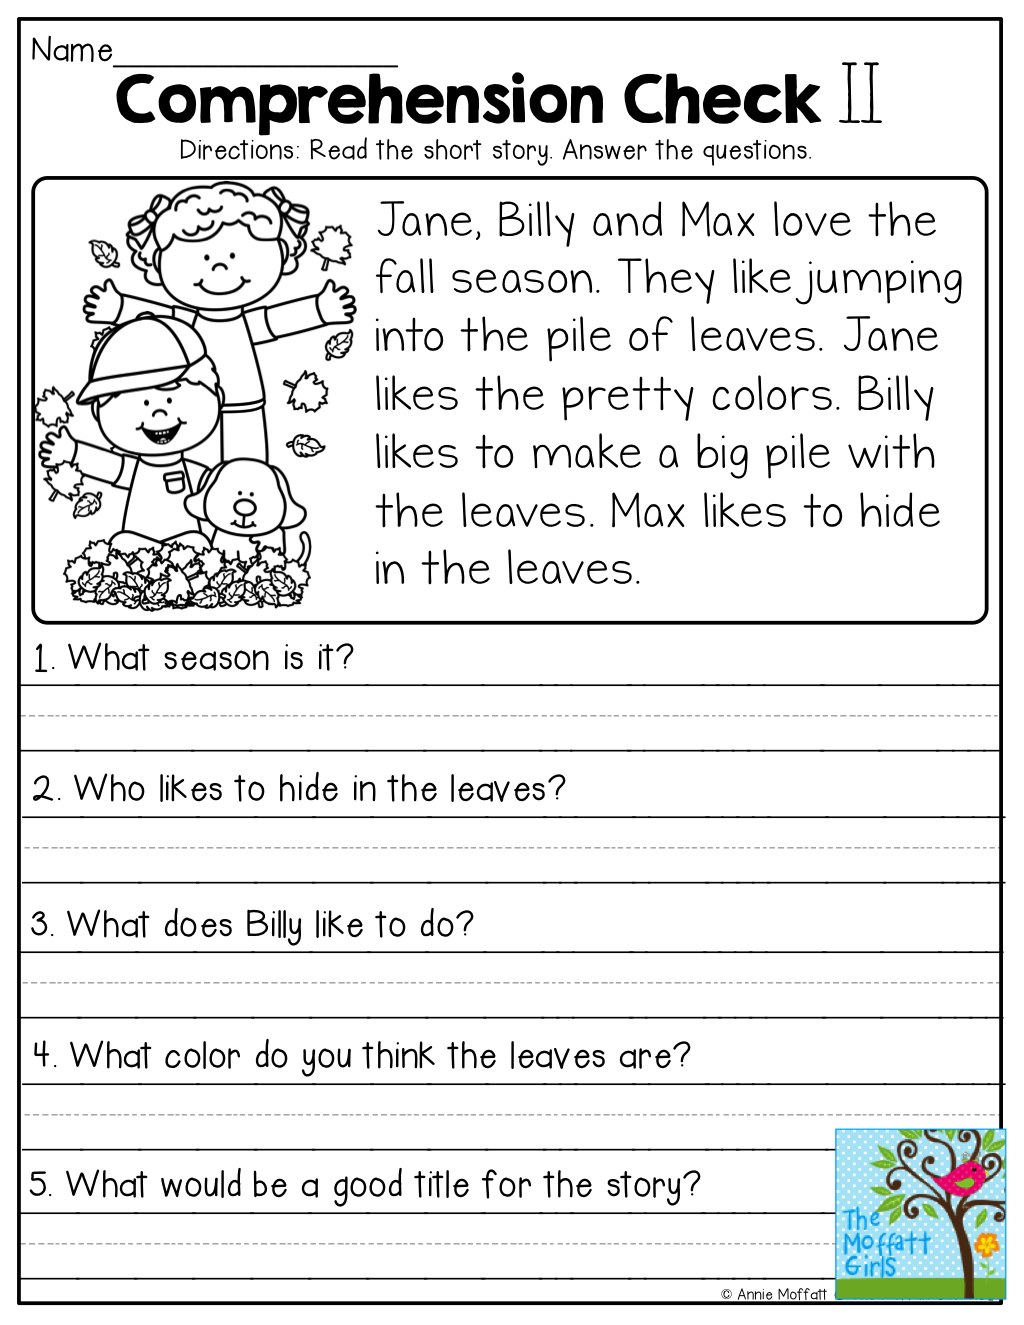 Comprehension Checks And So Many More Useful Printables! | Test Of | Free Printable Comprehension Worksheets For Grade 5